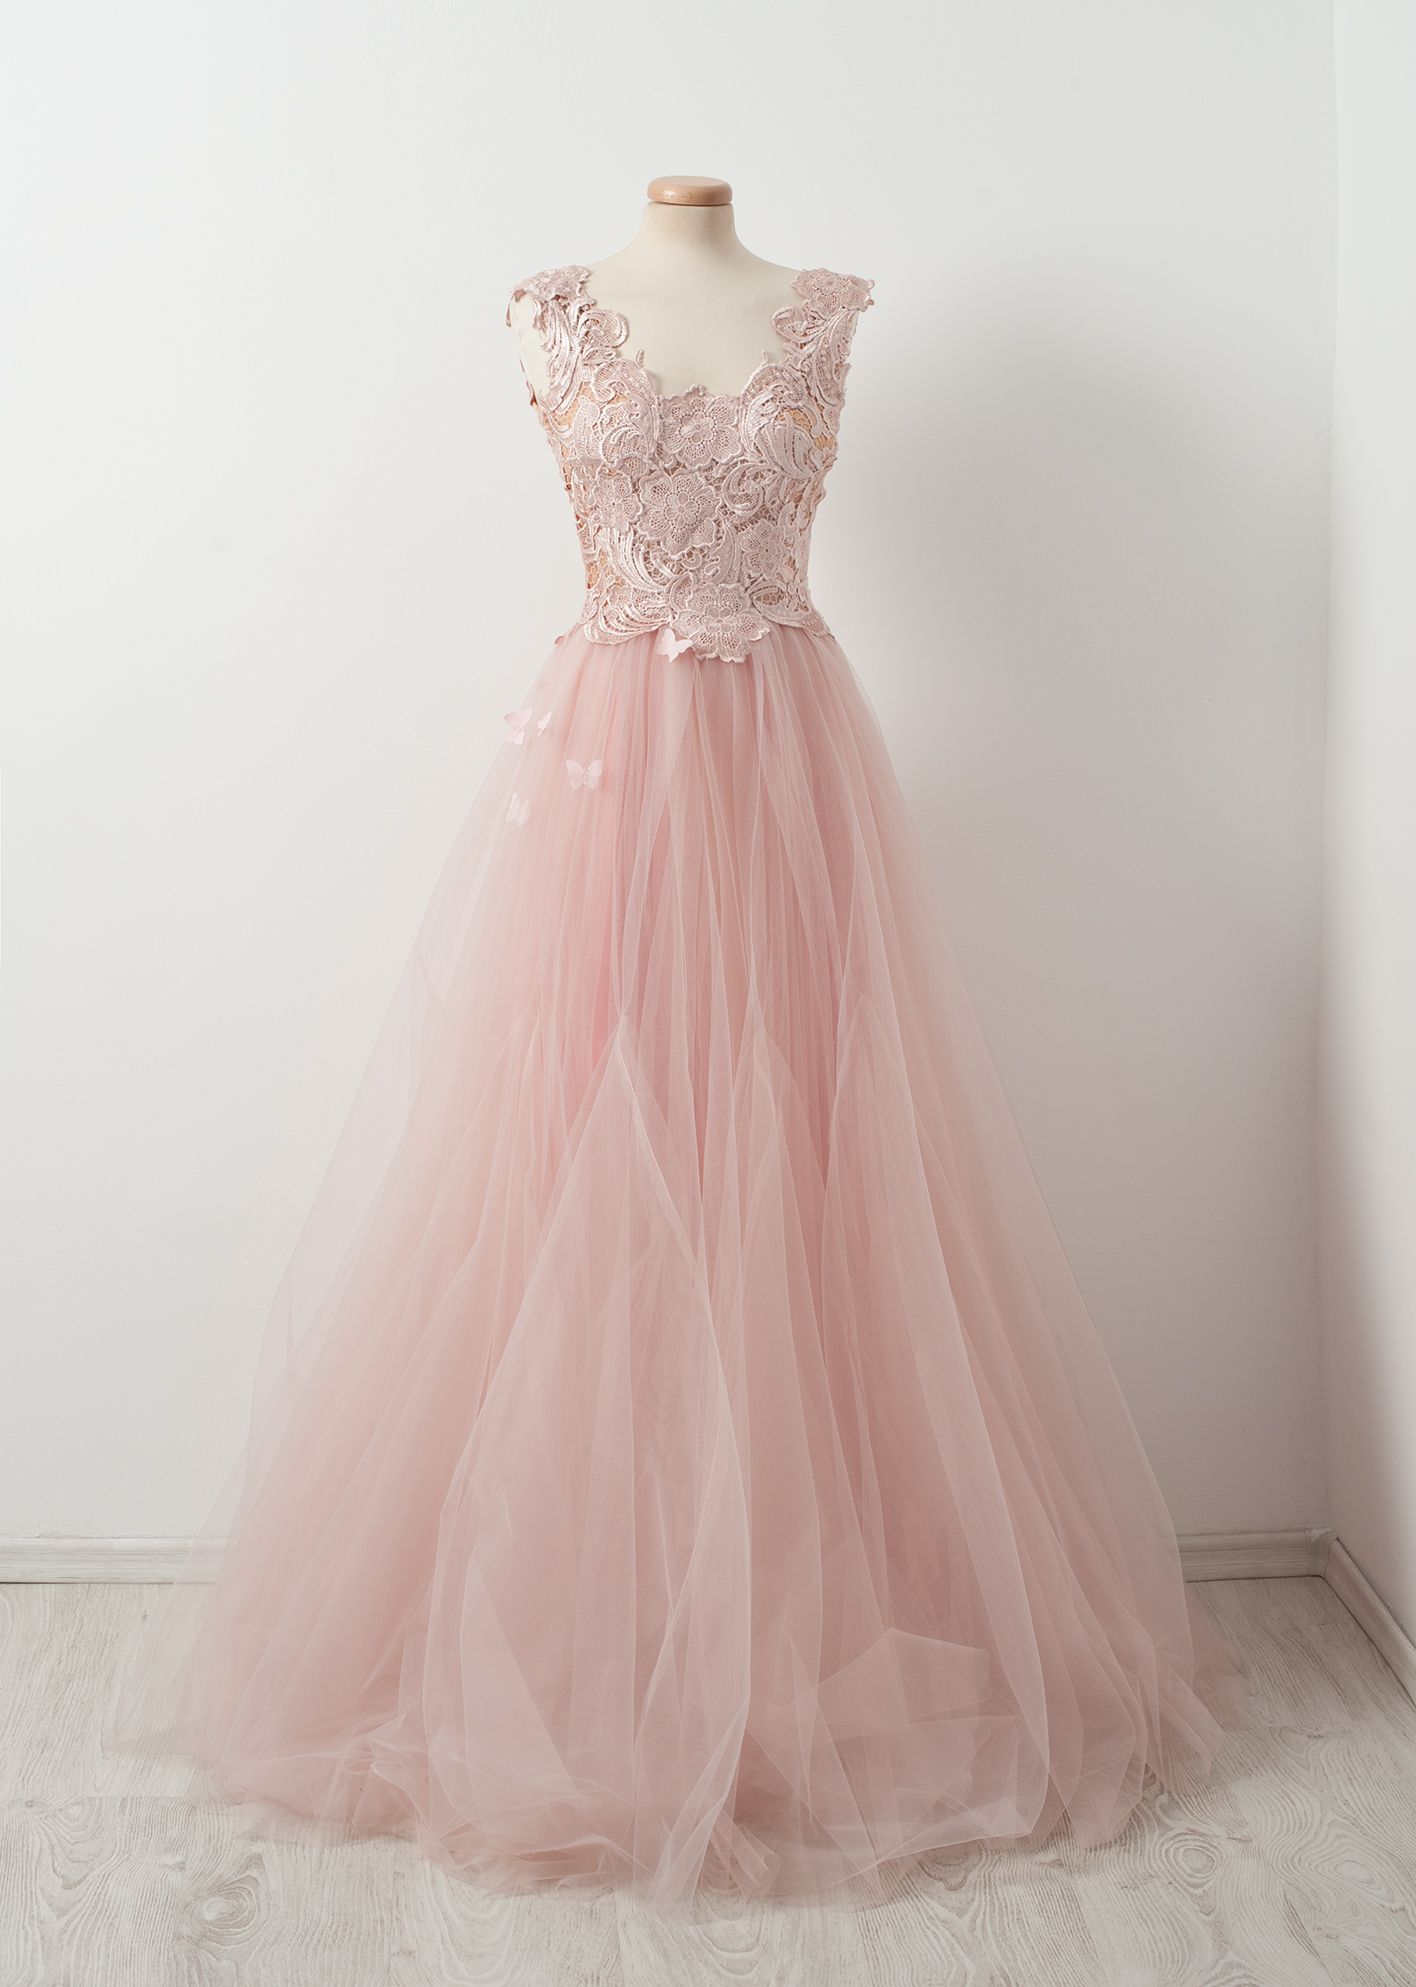 Mix together creamy tulle with pink powder pink sugar. Add marzipan ...